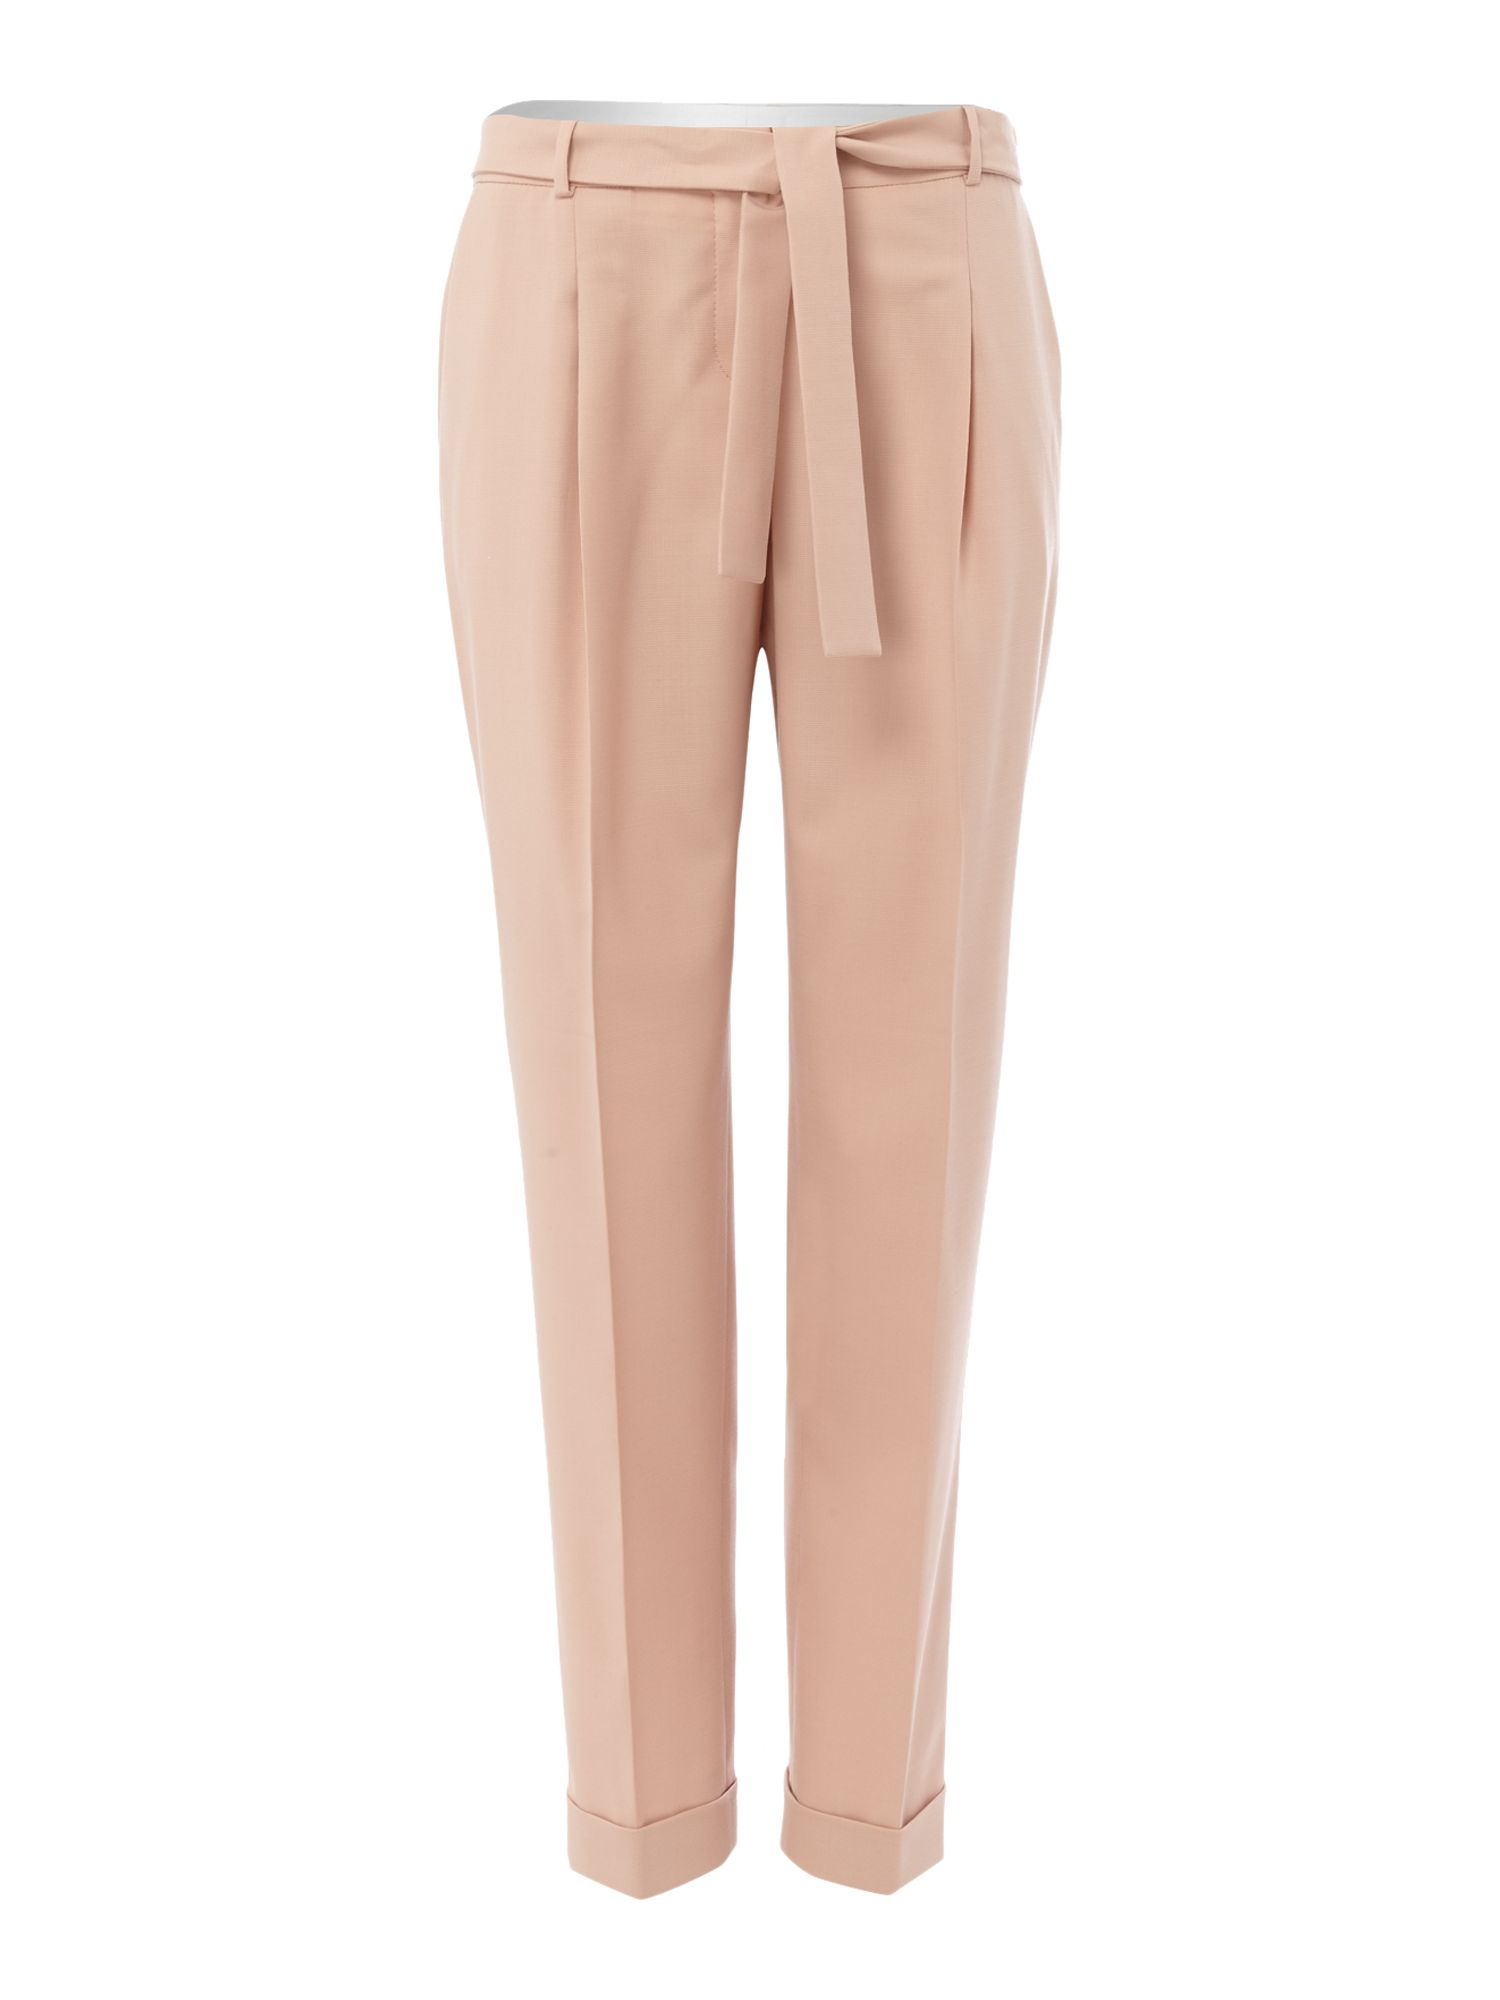 Hugo Boss Tapered trouser with tie belt, Pink